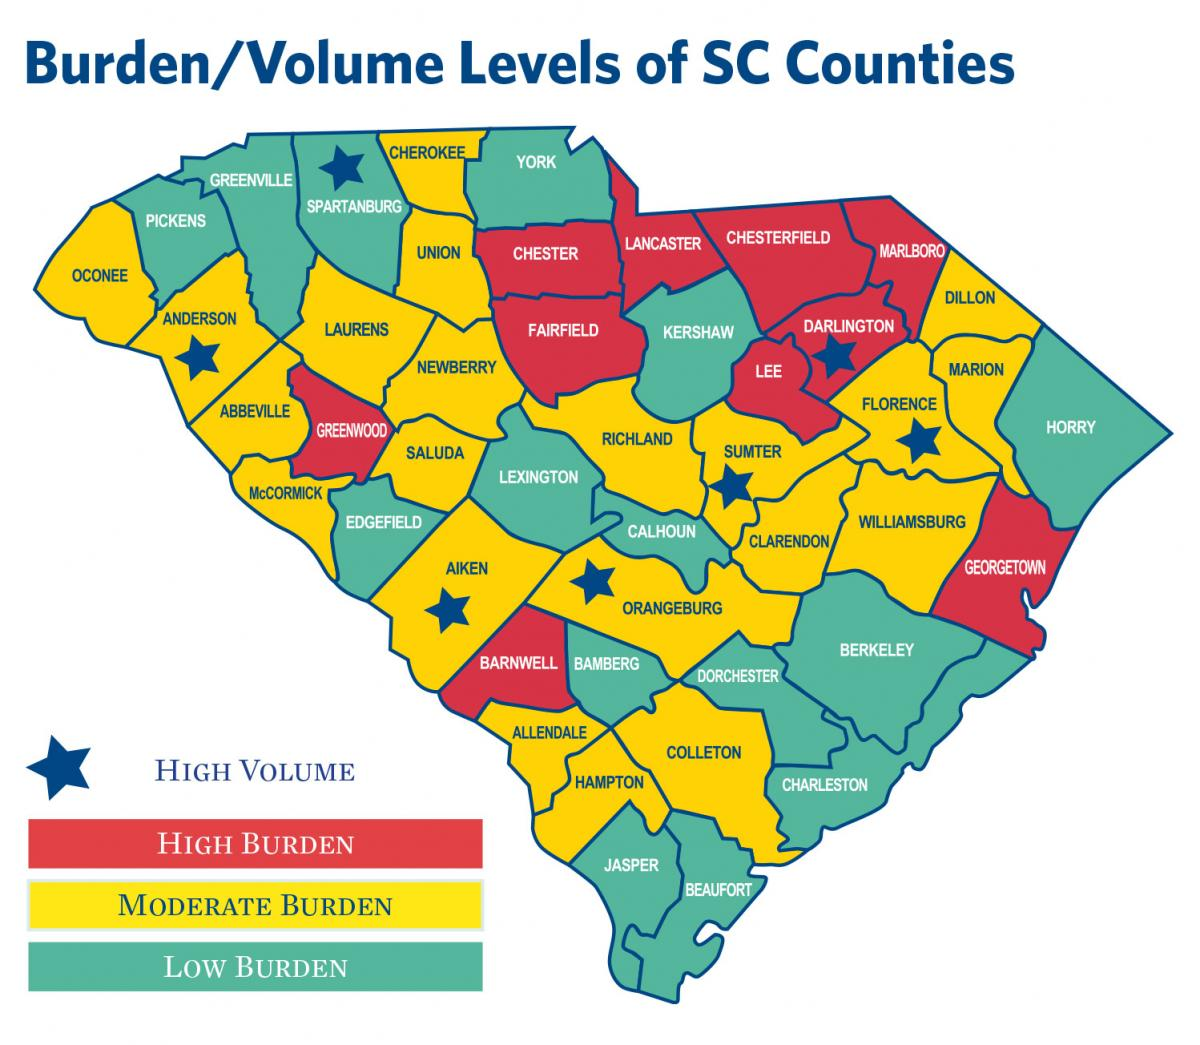 Burden/Volume Levels of SC Counties